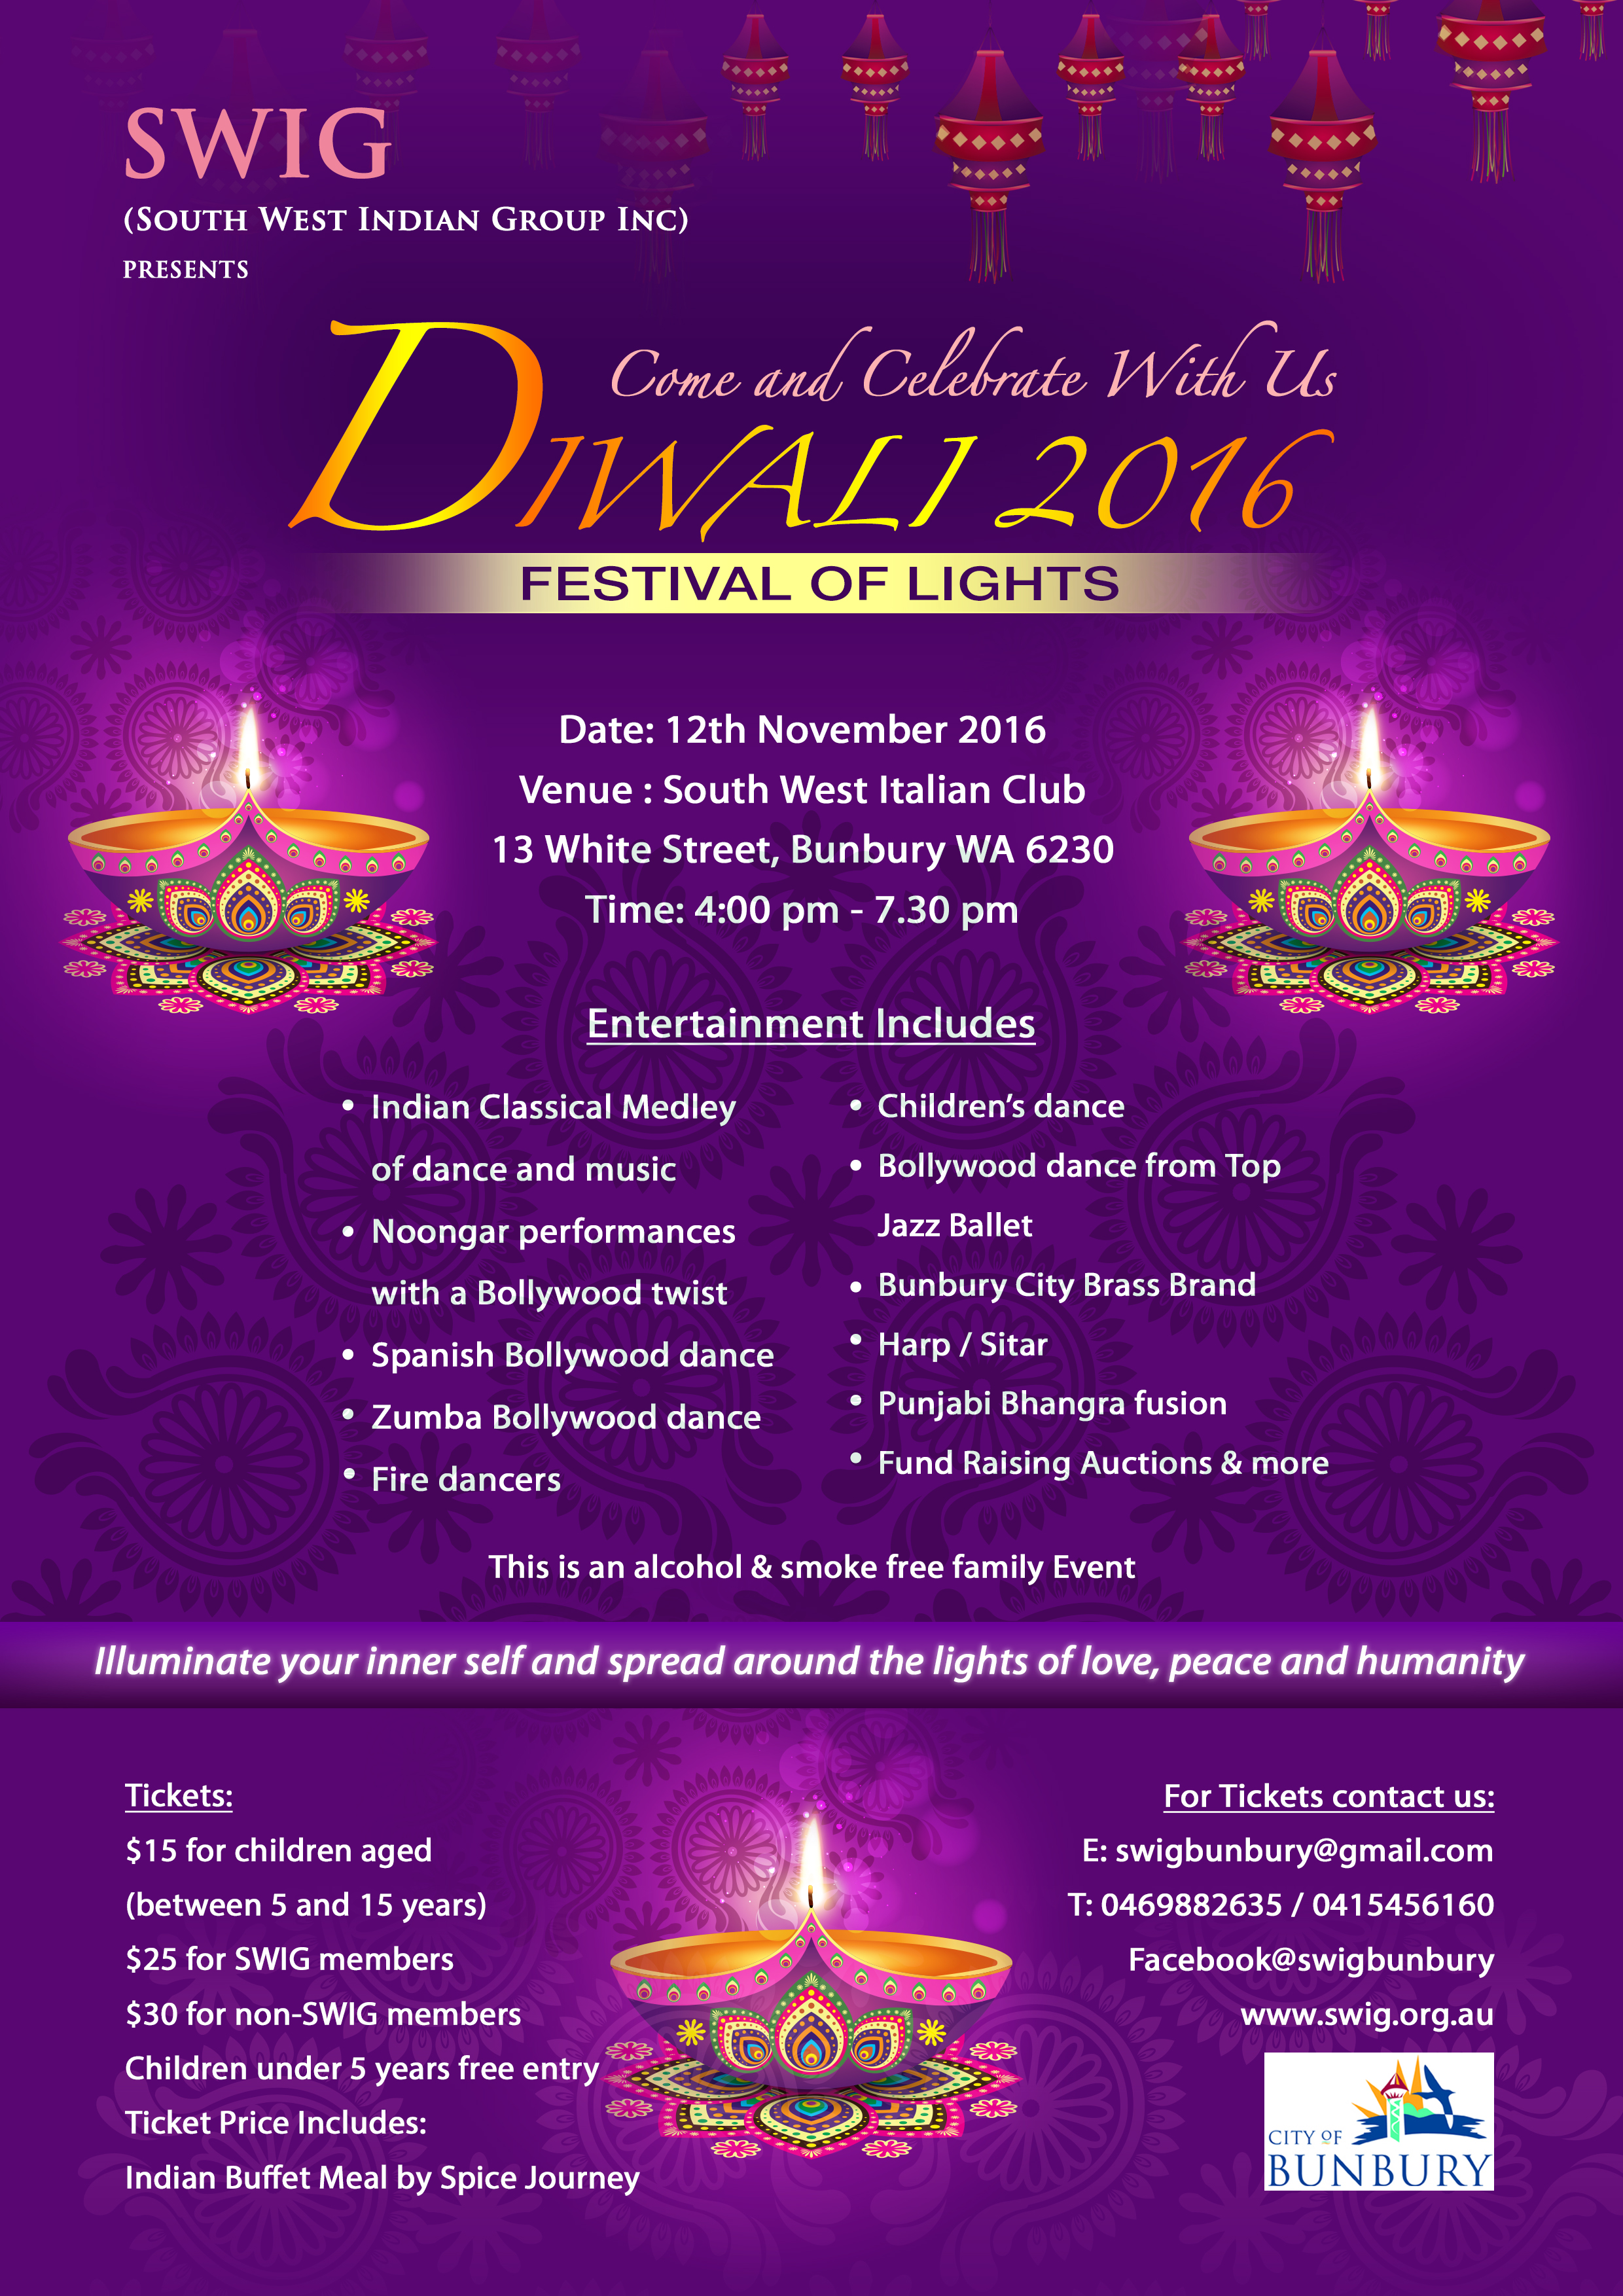 Tickets are also available at Central News Bunbury, Spicy Superstore and Spice Journey (food van)